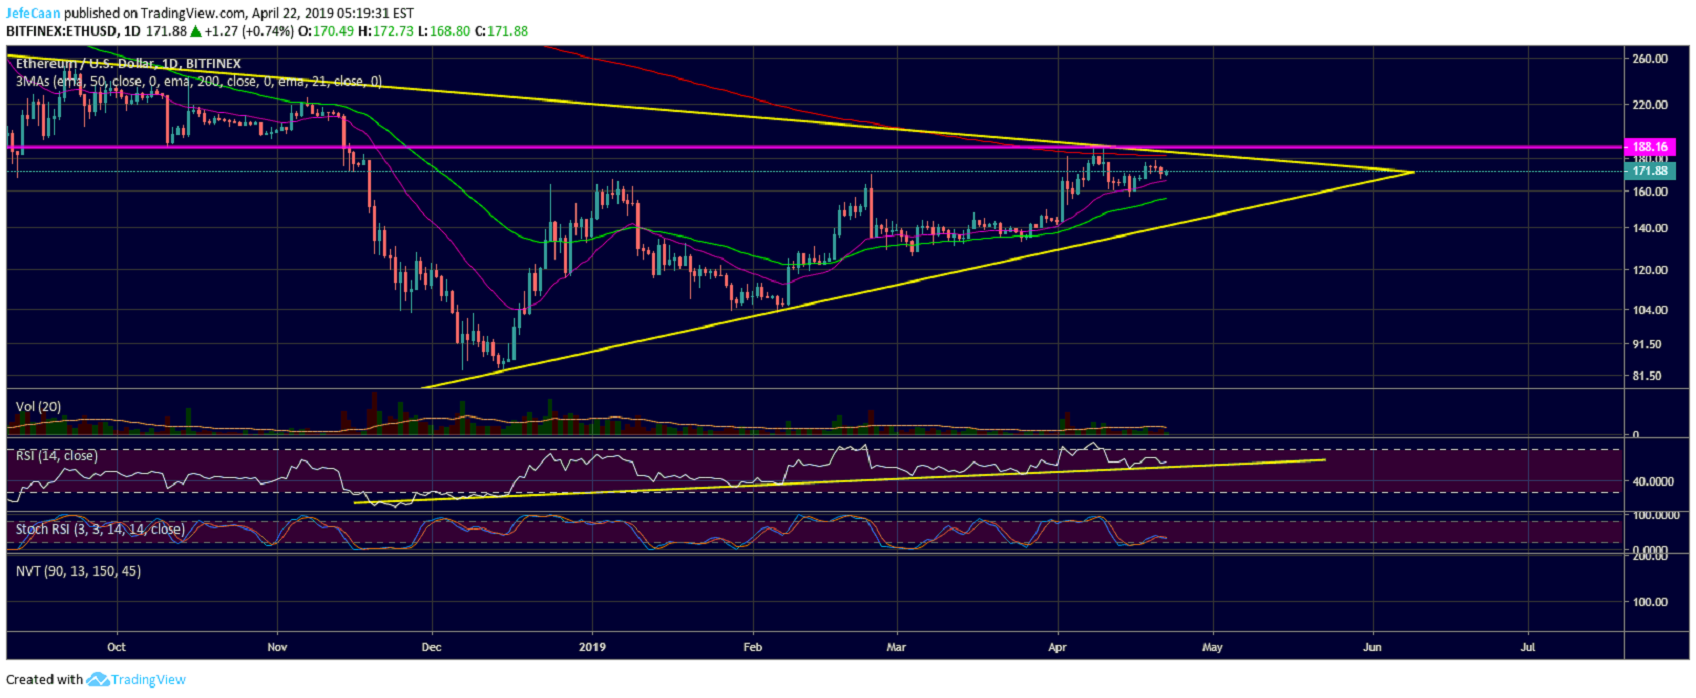 Ethereum (ETH) Likely To Retest $188 Resistance Before Next Decisive Move